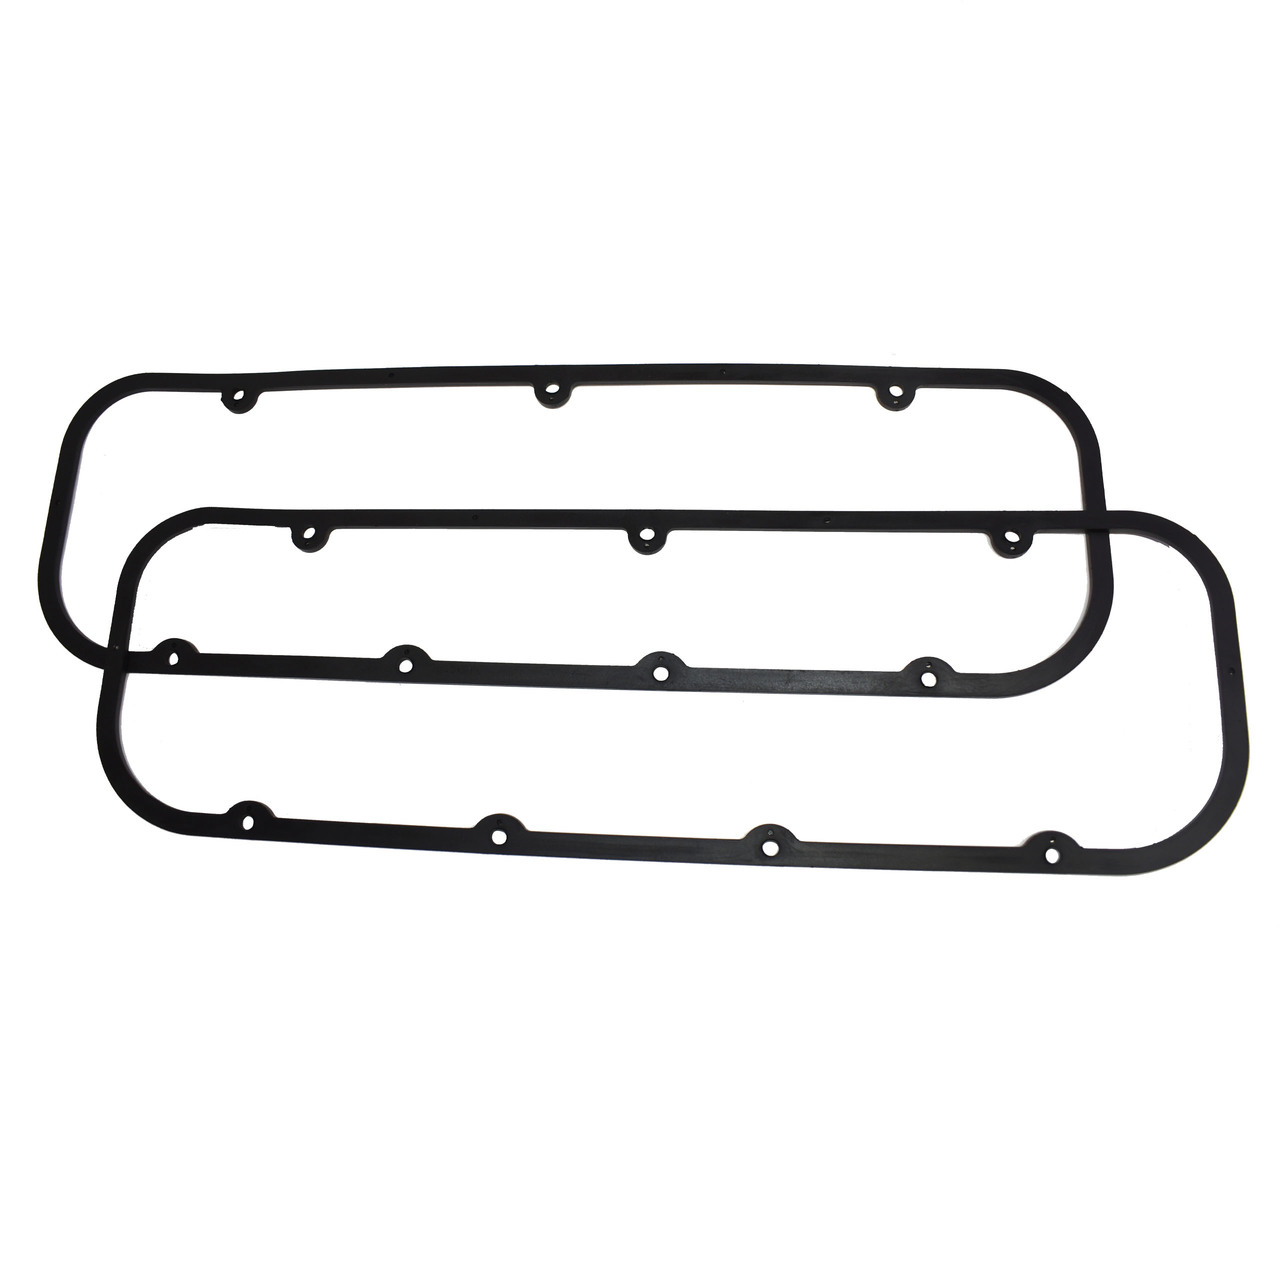 A-Team Performance CHEVY BIG BLOCK 396 402 427 454 RUBBER VALVE COVER GASKETS